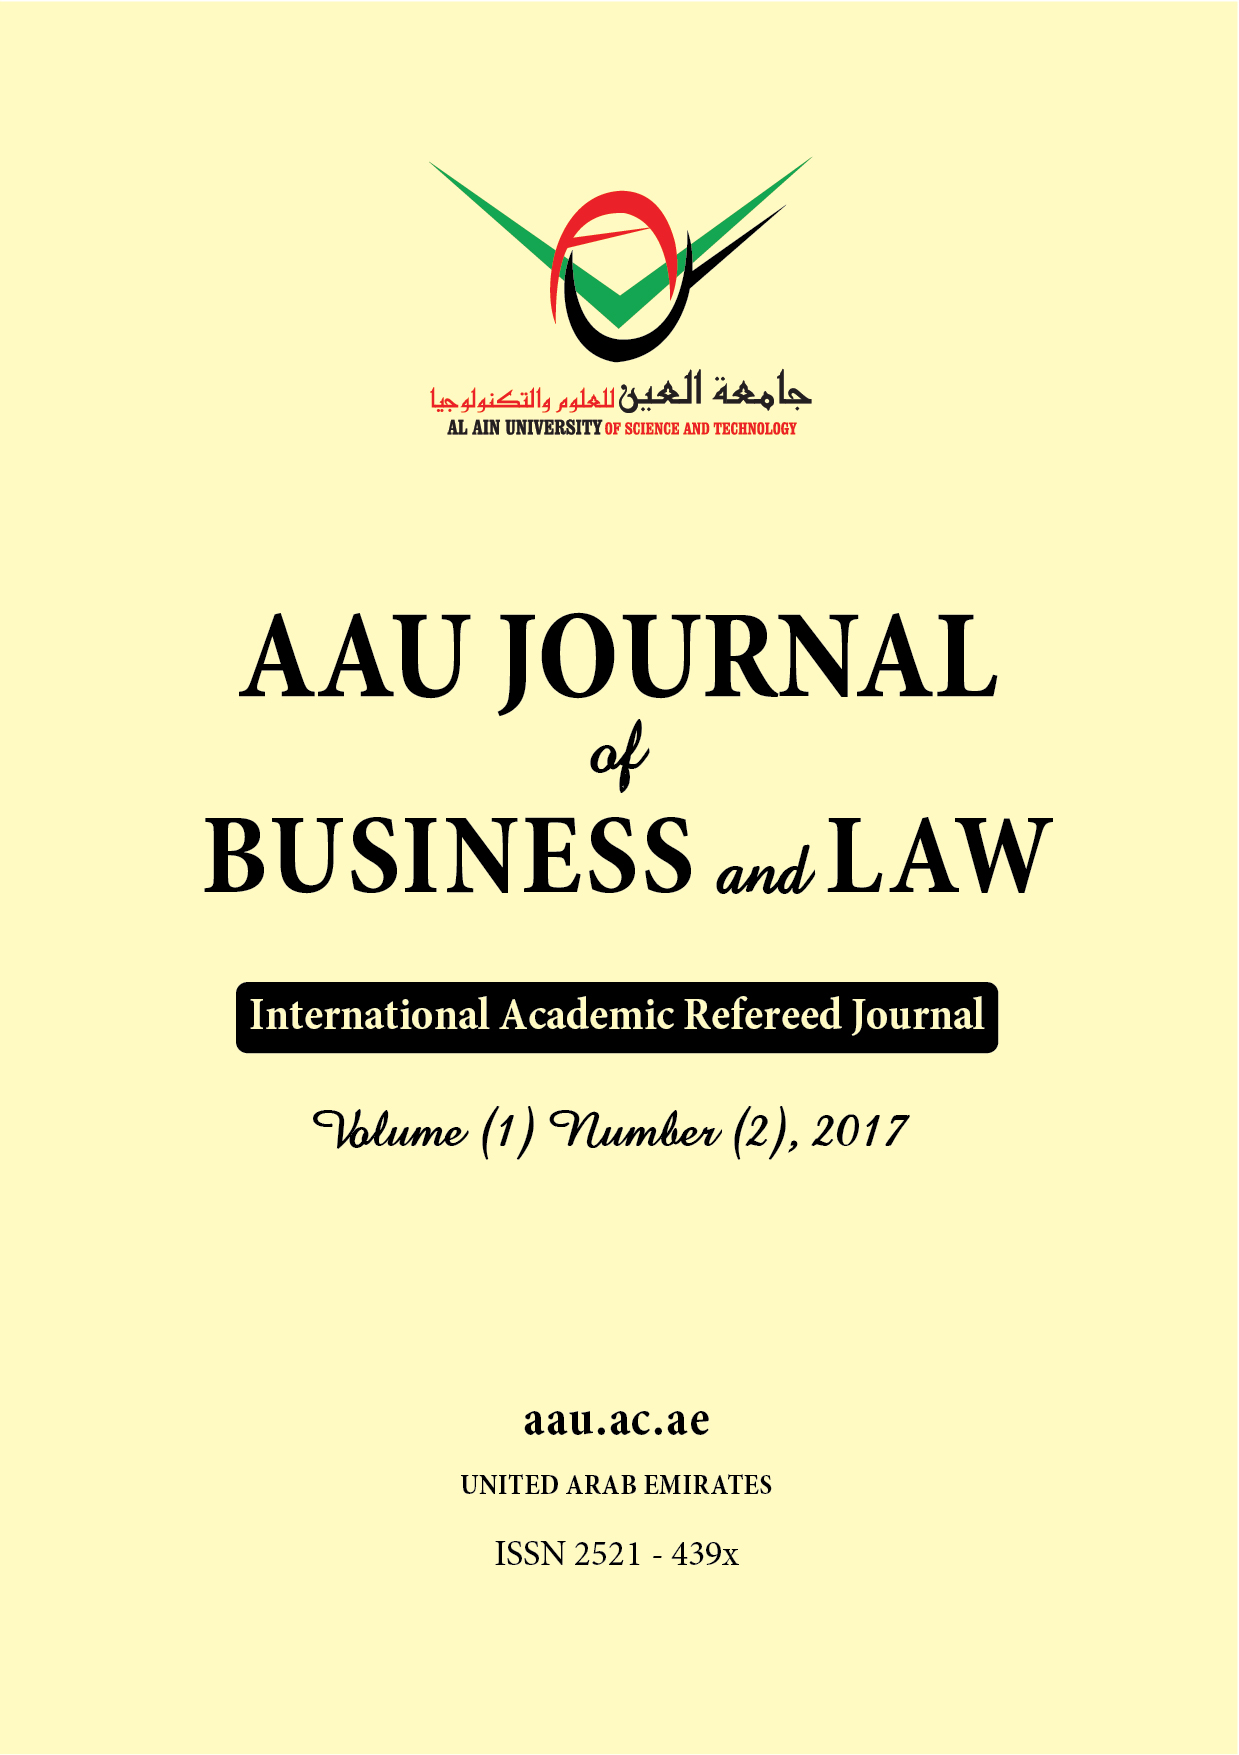 AAU JOURNAL of BUSINESS and LAW